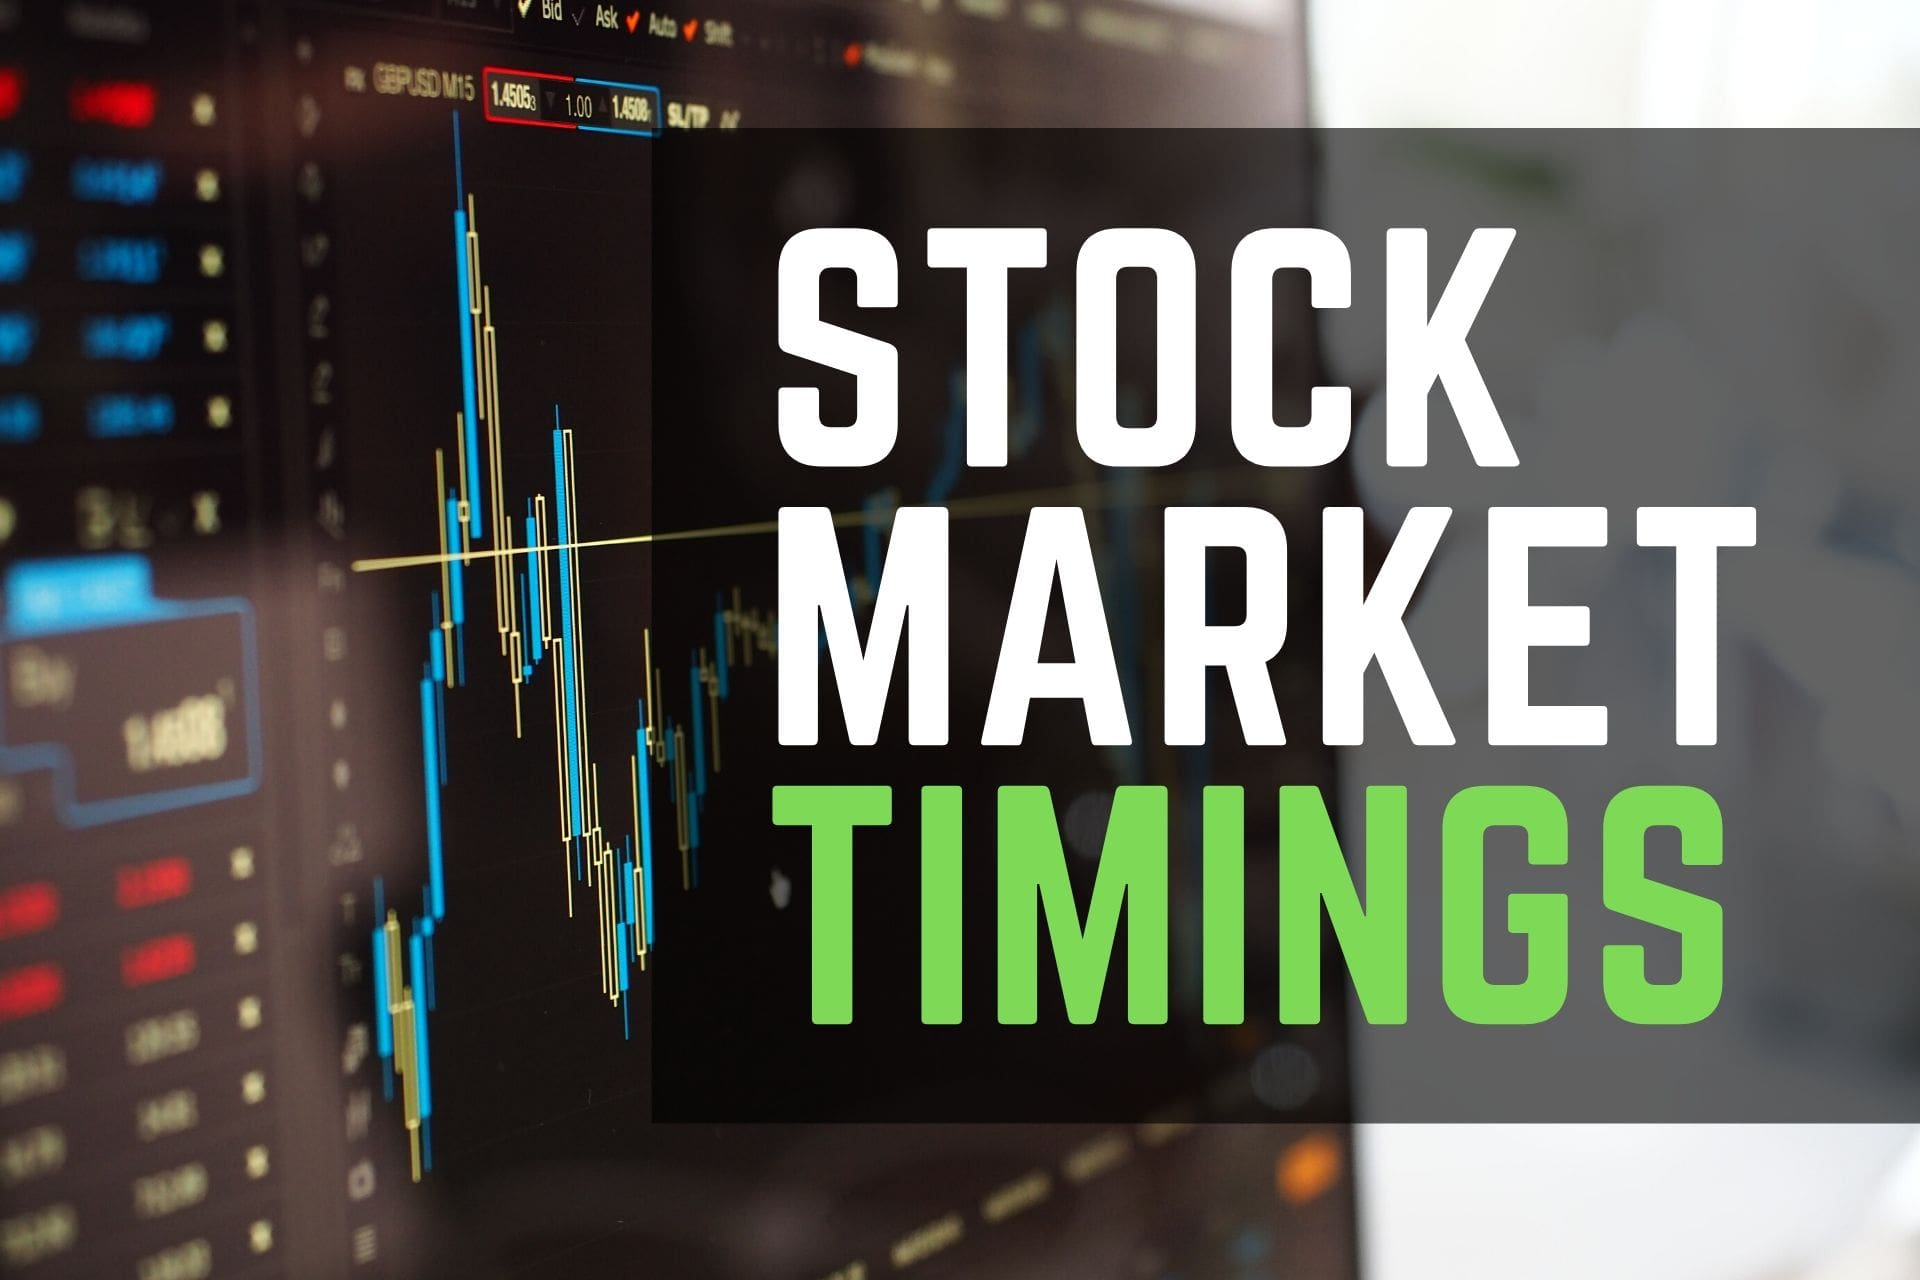 How to do the stock trading with the NYSE?